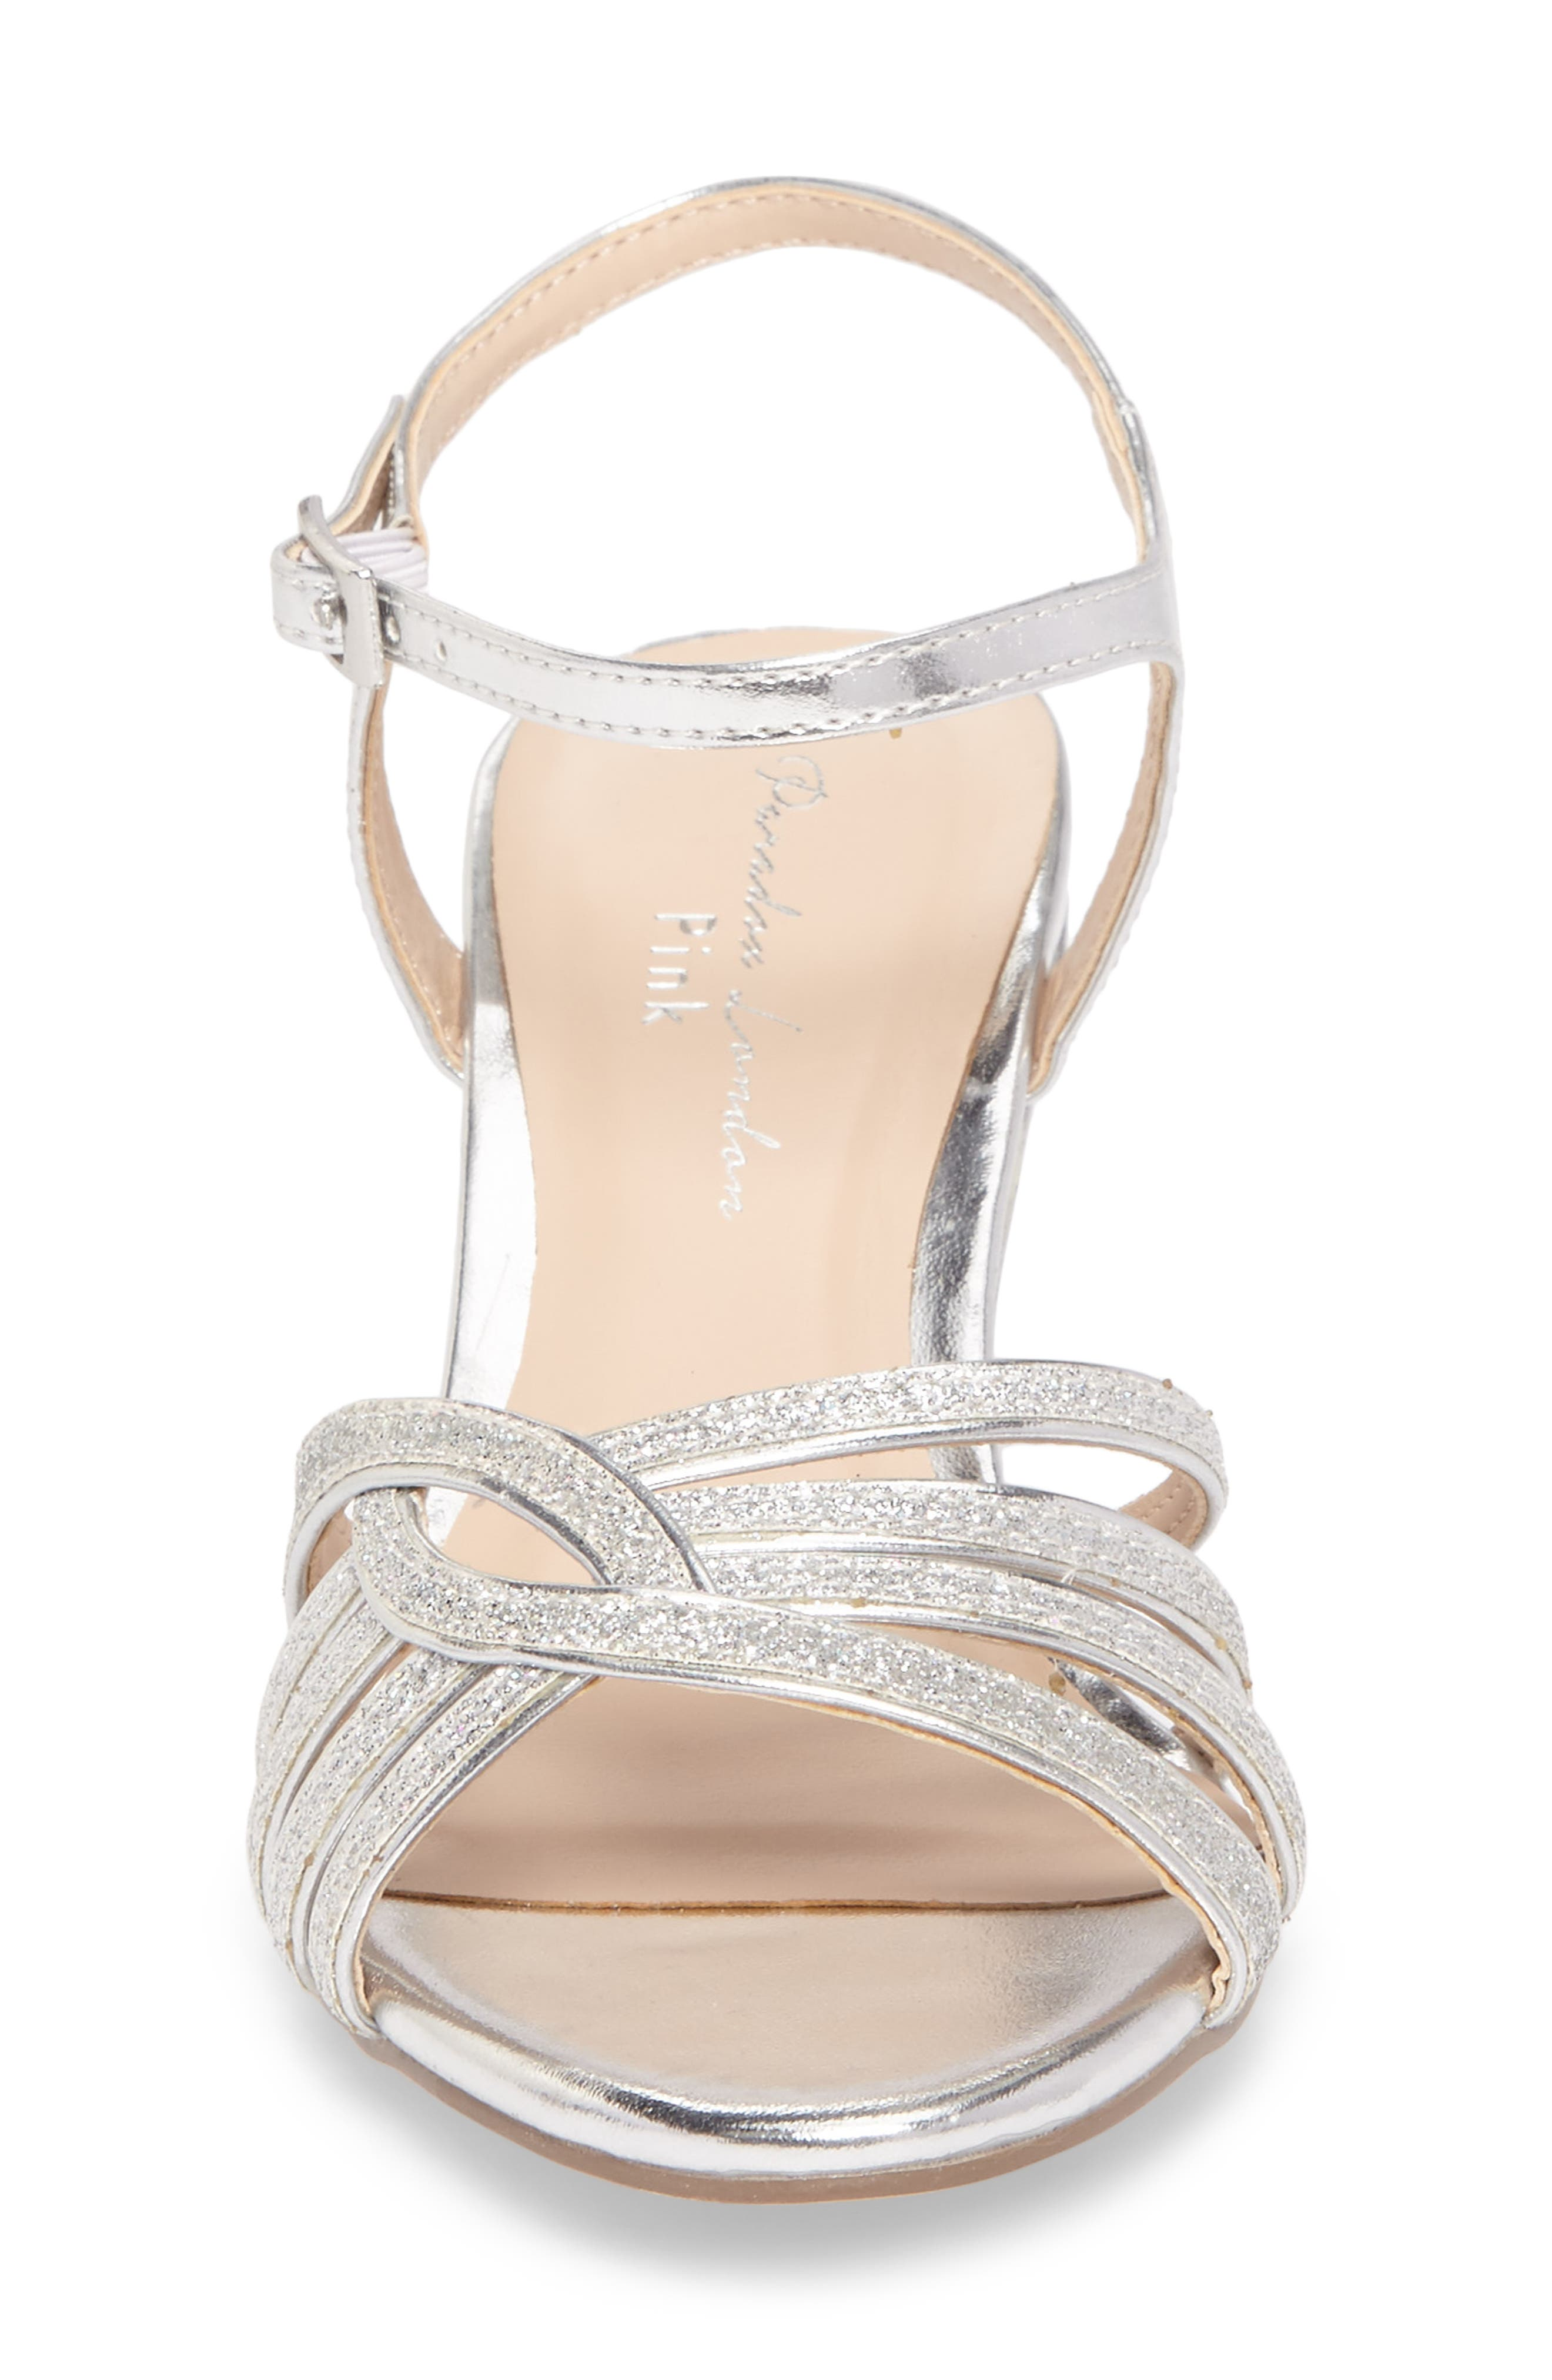 PARADOX LONDON PINK,                             Karianne Wedge Sandal,                             Alternate thumbnail 4, color,                             040